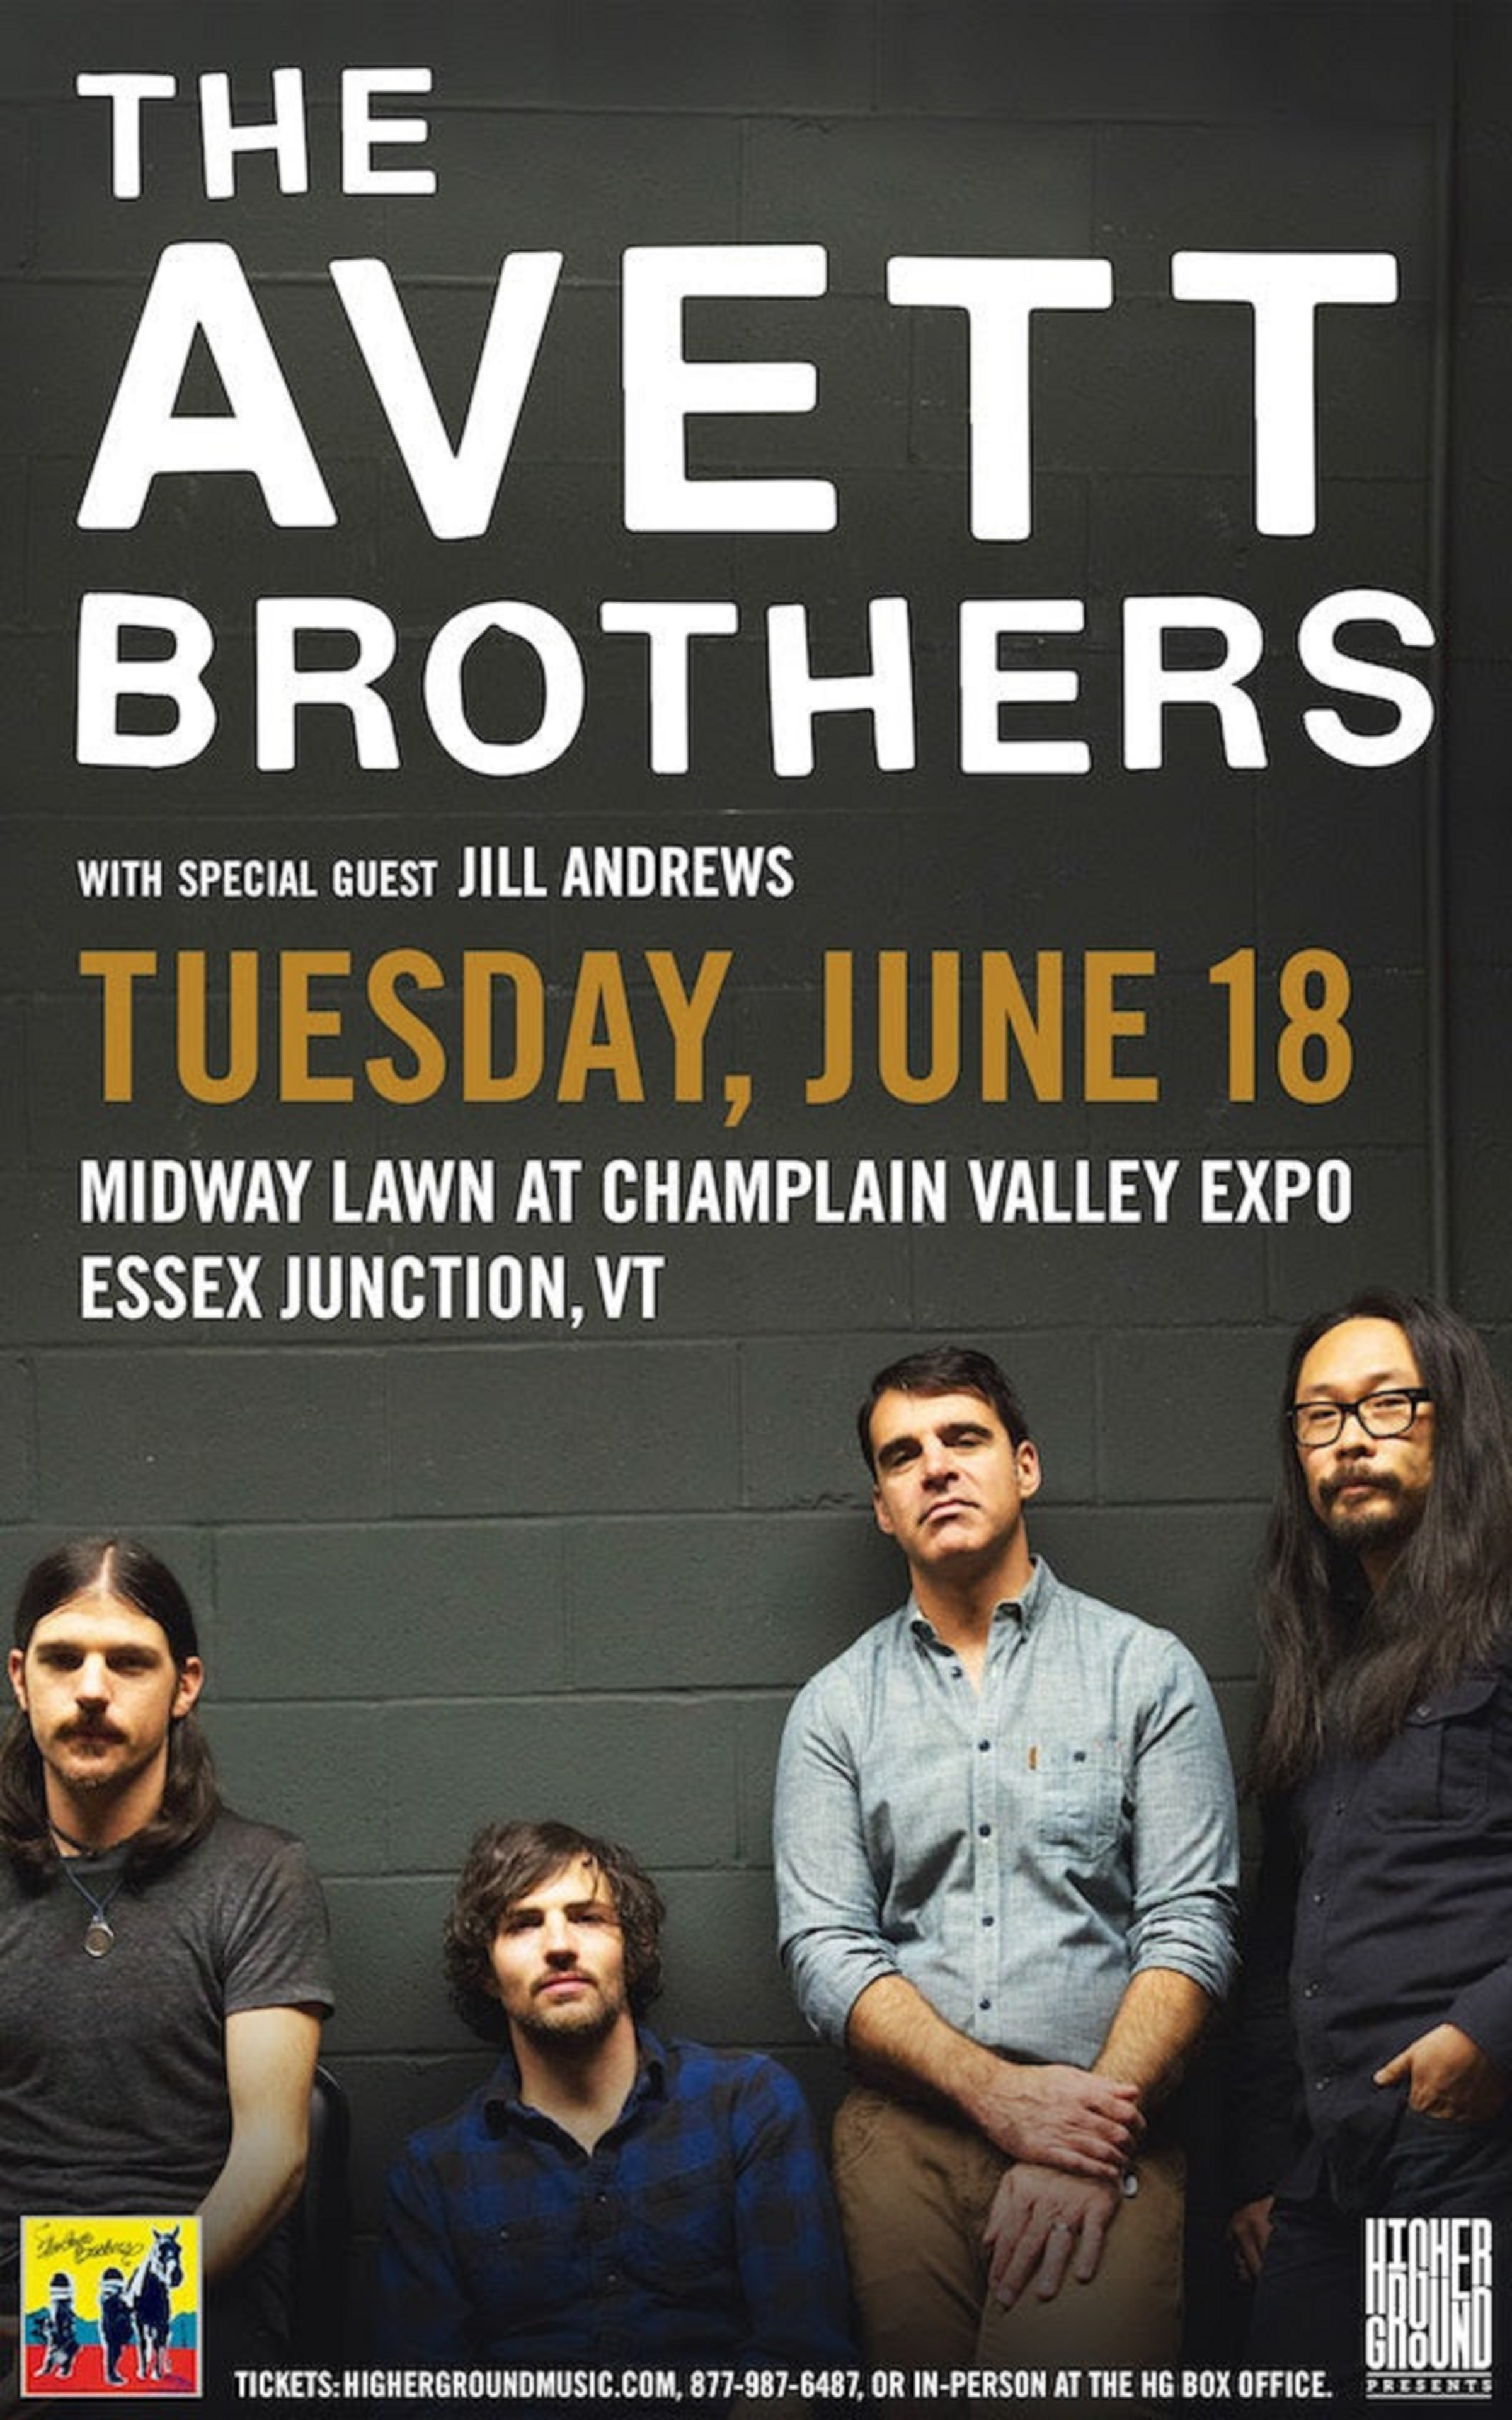 The Avett Brothers to play Midway Lawn in Essex